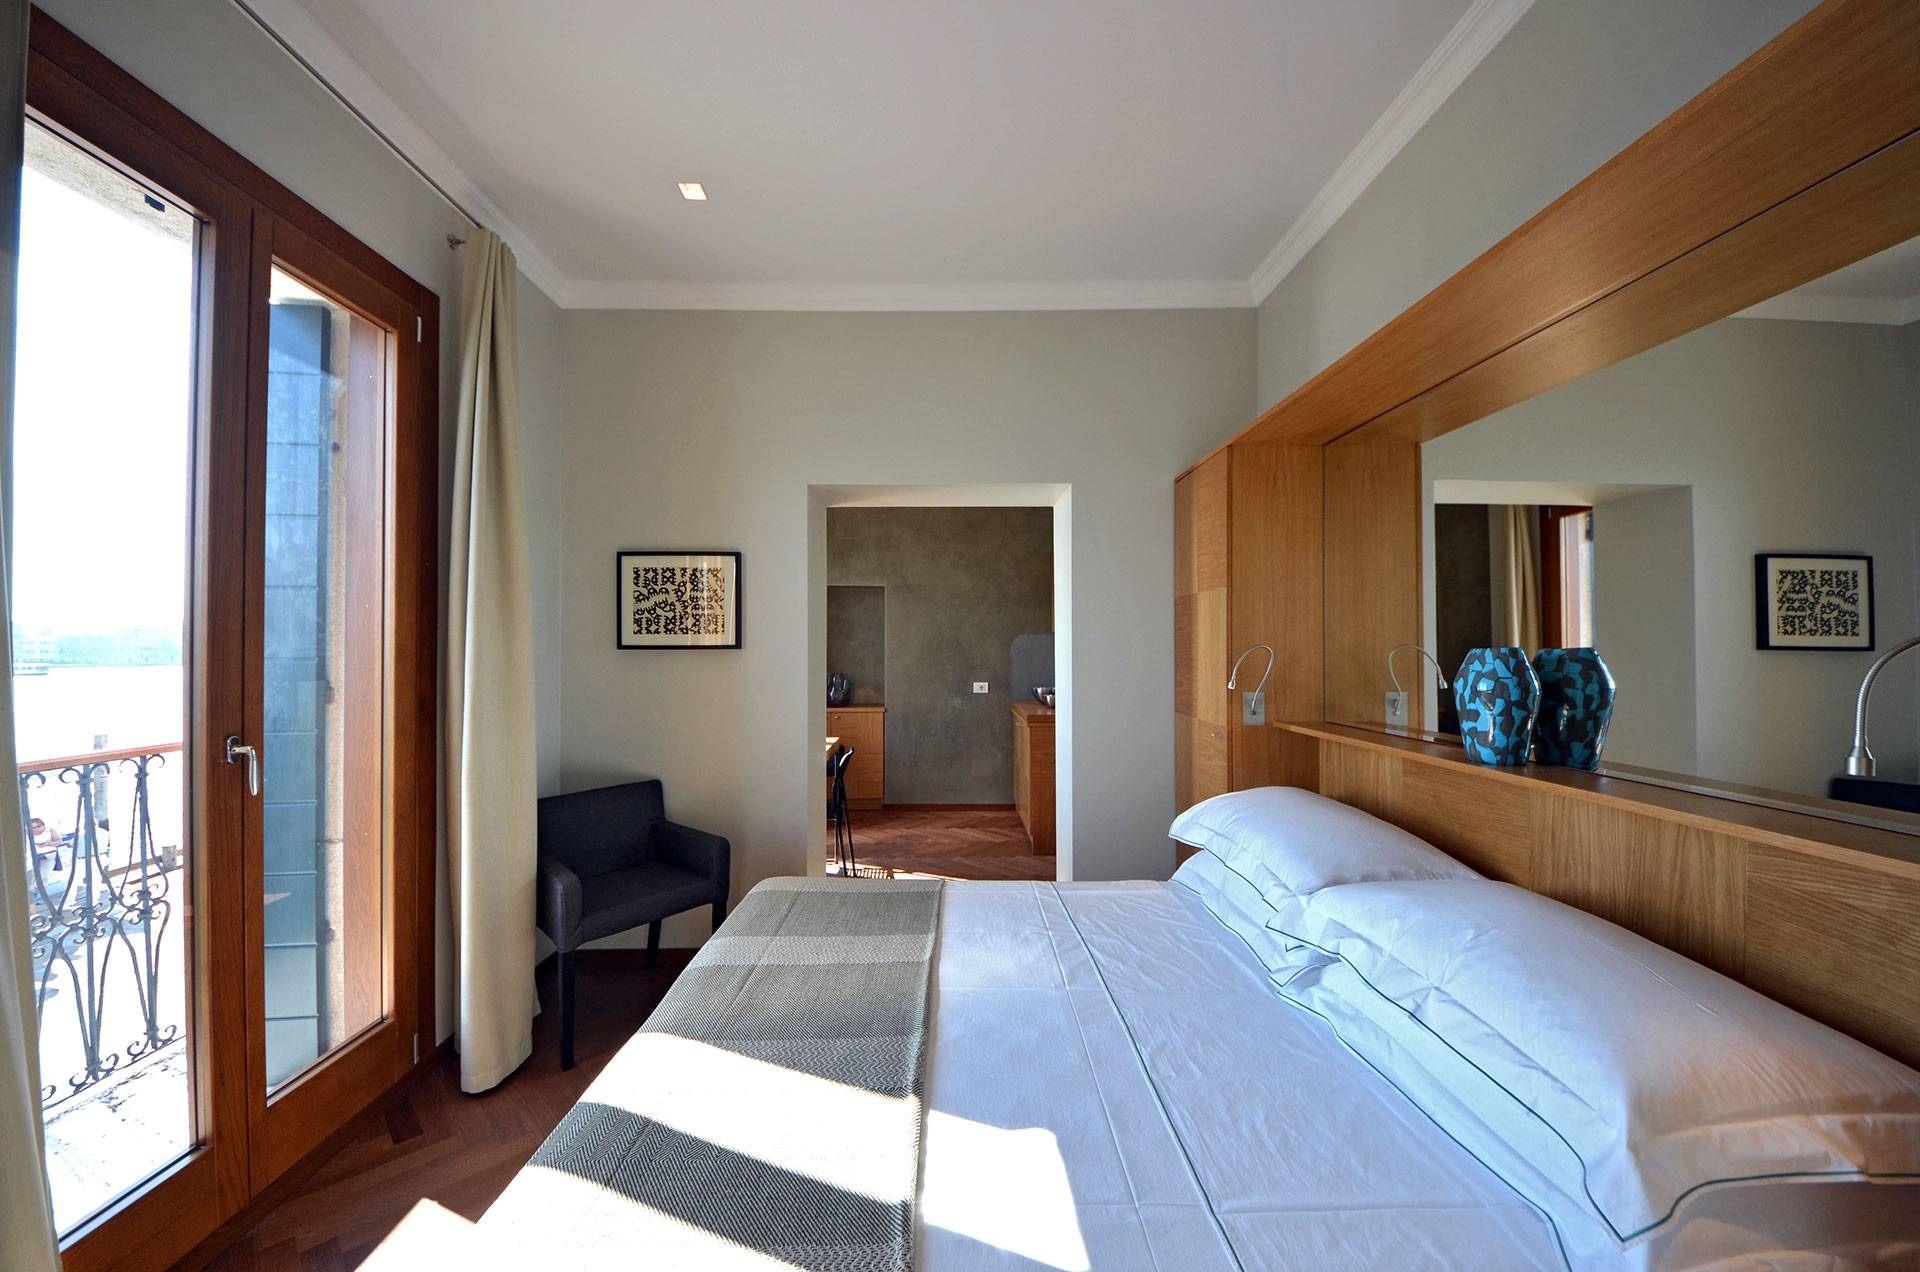 2nd double bedroom, with balcony and canal view